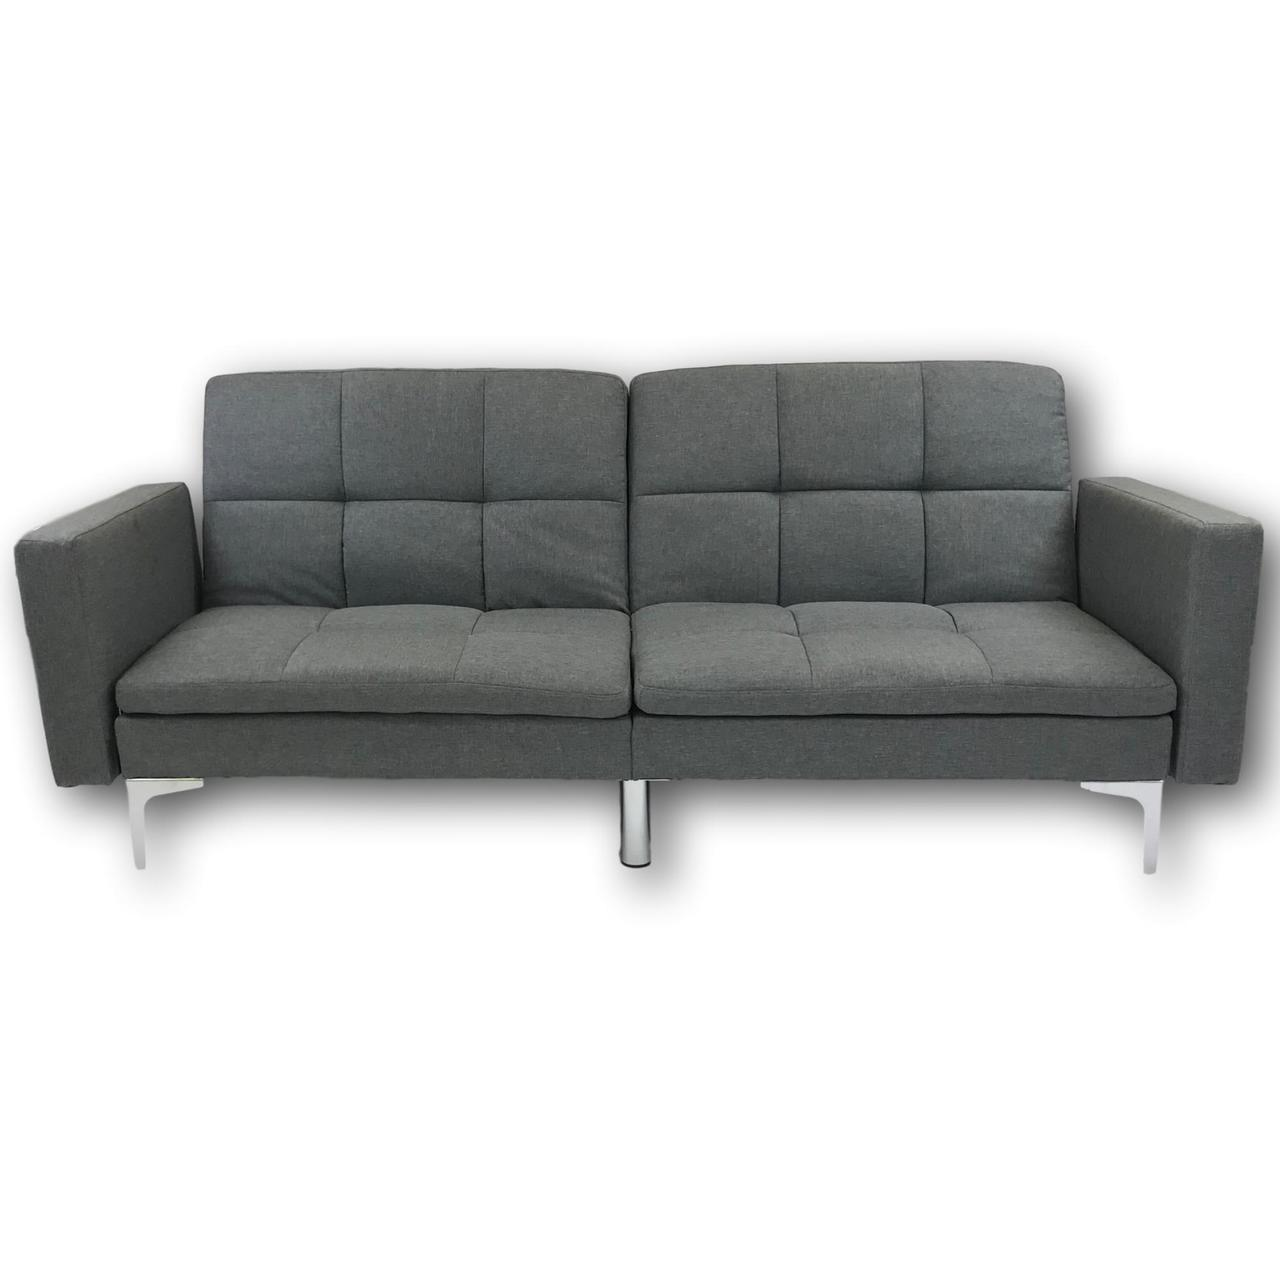 Sofa North York Living Room Furniture For Home Living Spaces Walmart Canada